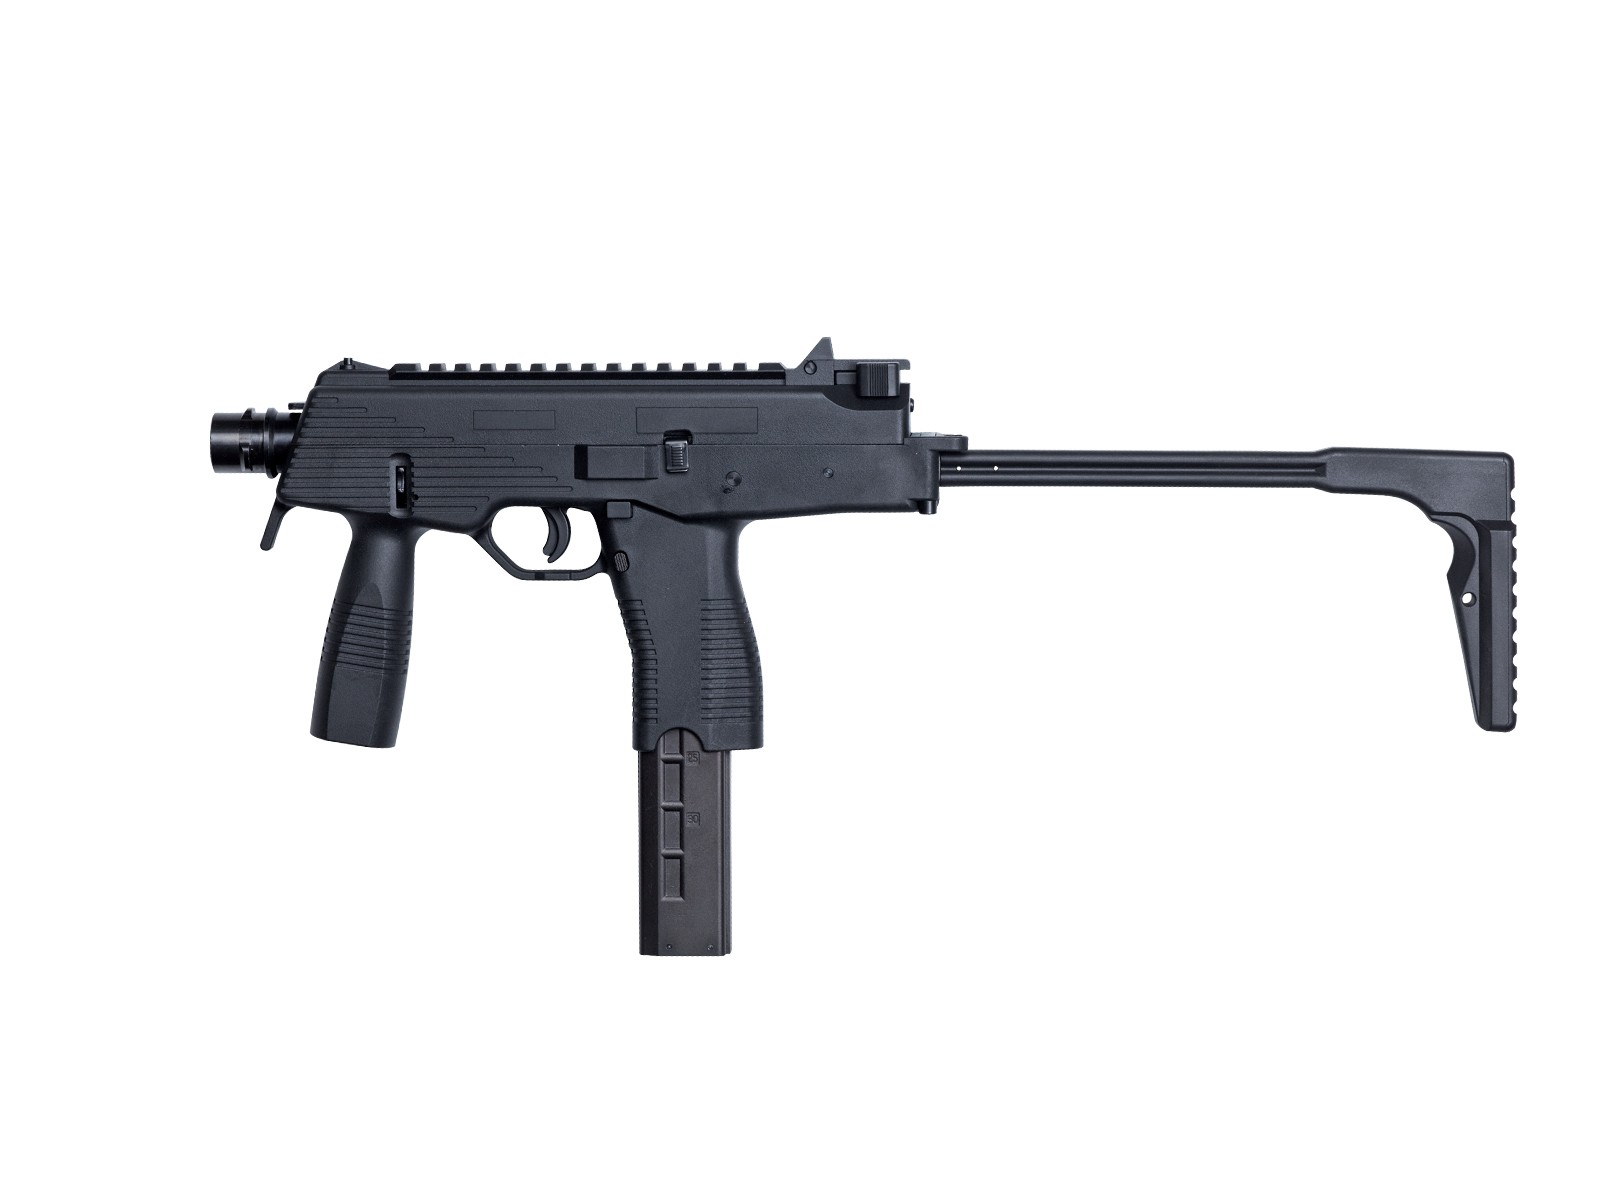 ASG B&T MP9 A1 Submachine Gun GBB (Black)